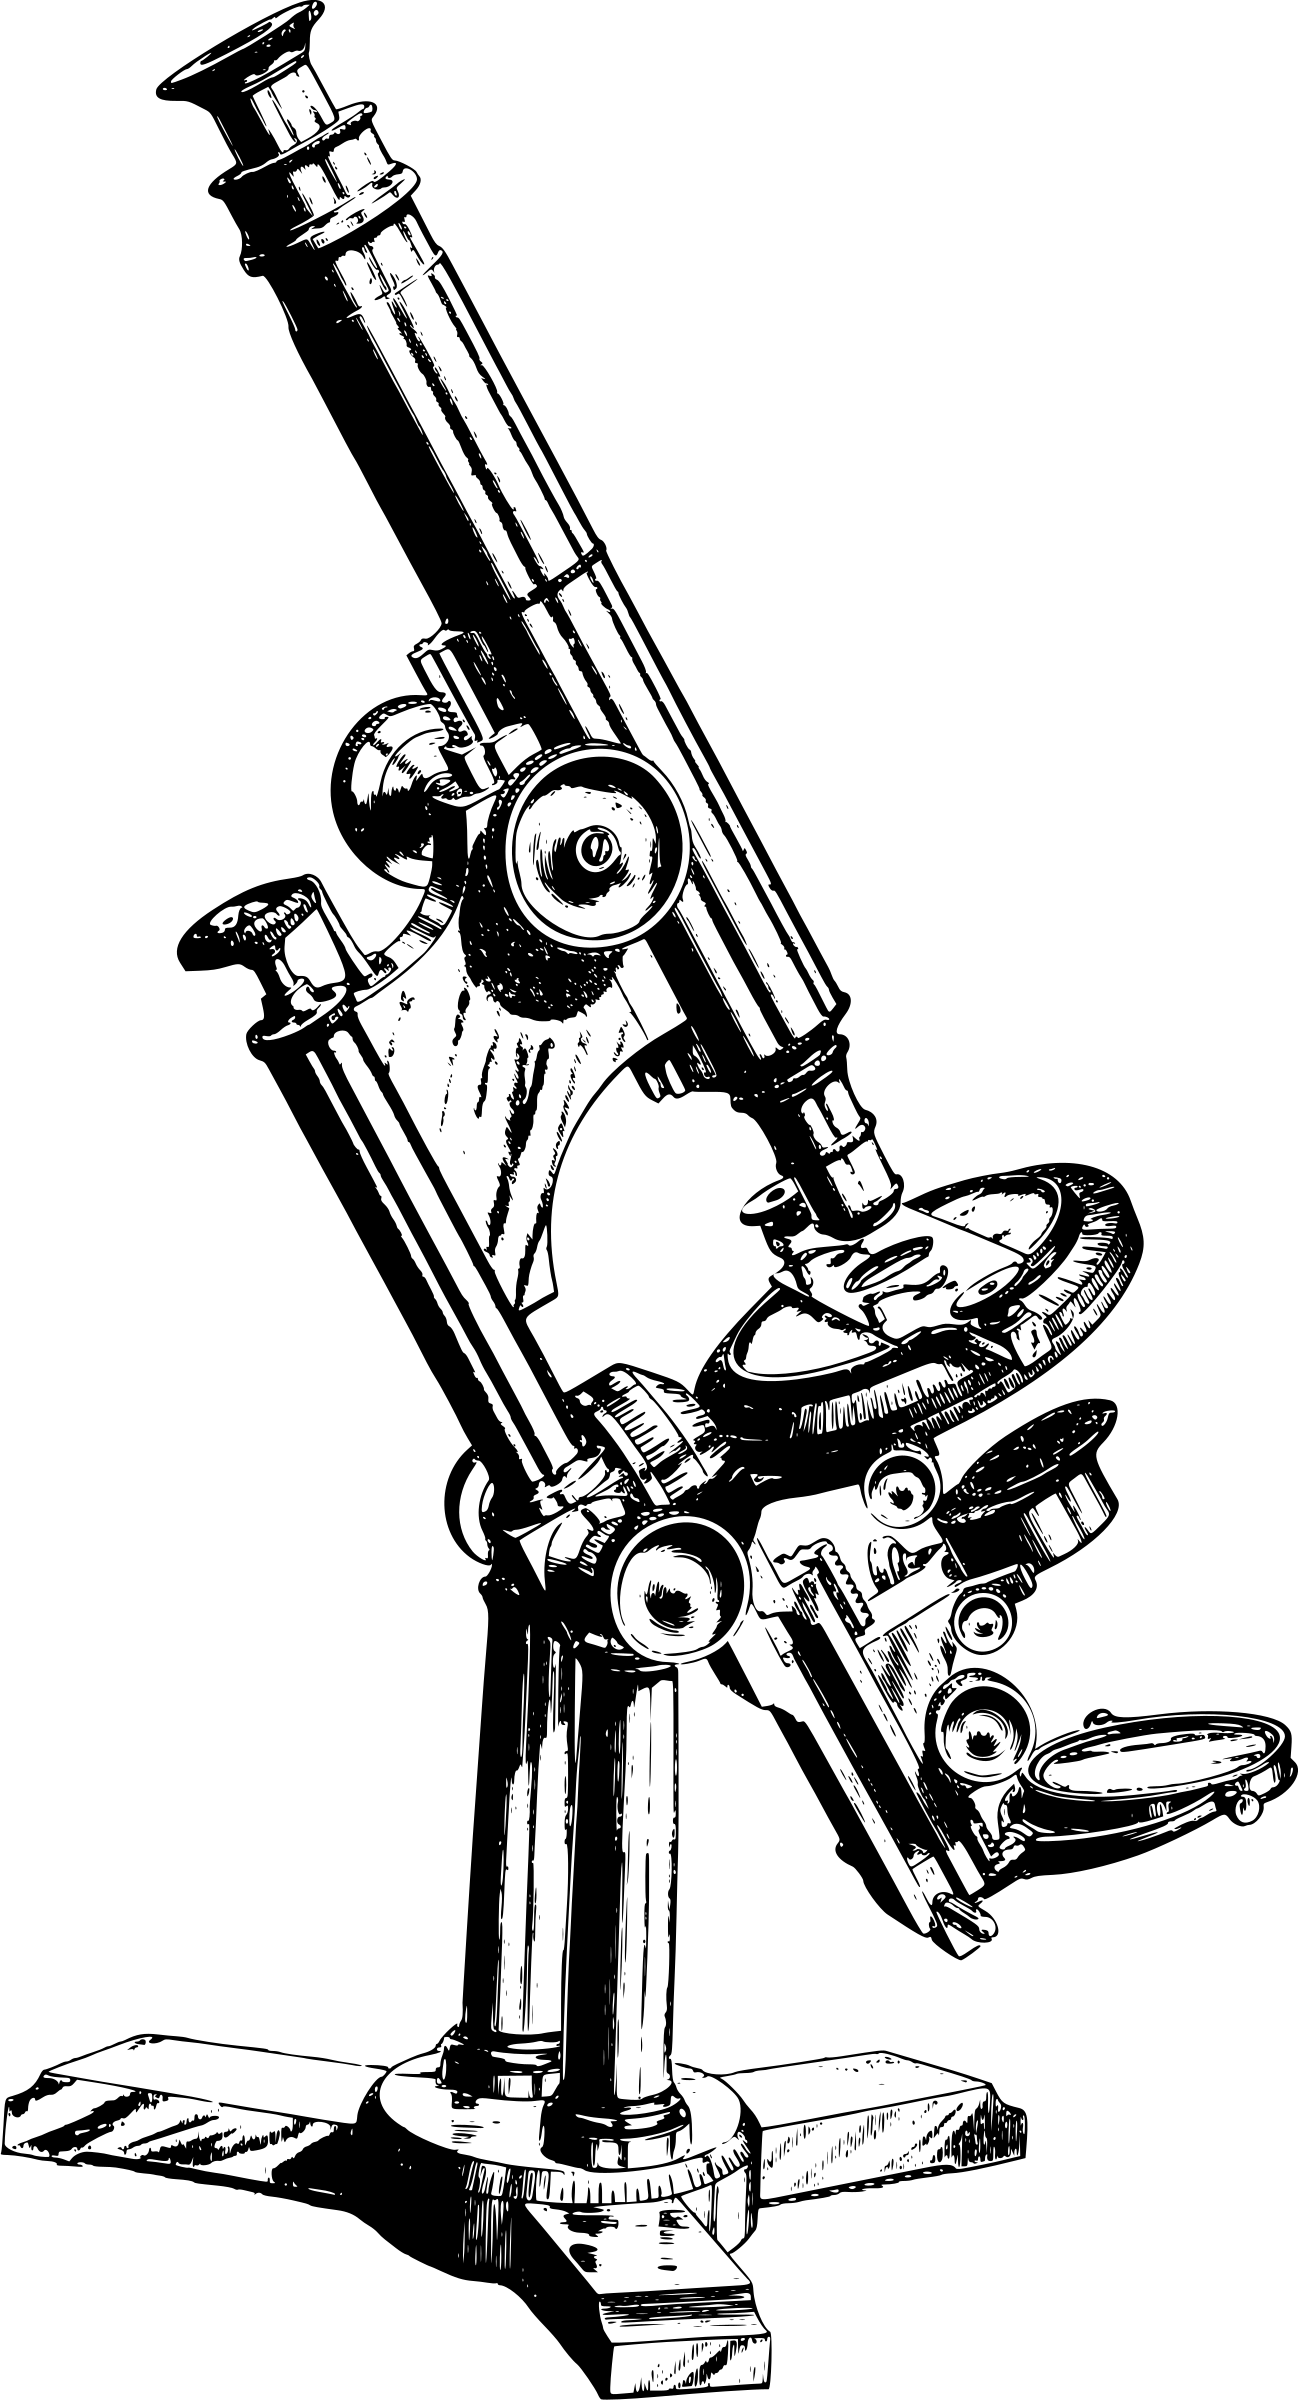 Binocular Microscope Drawing At Getdrawings